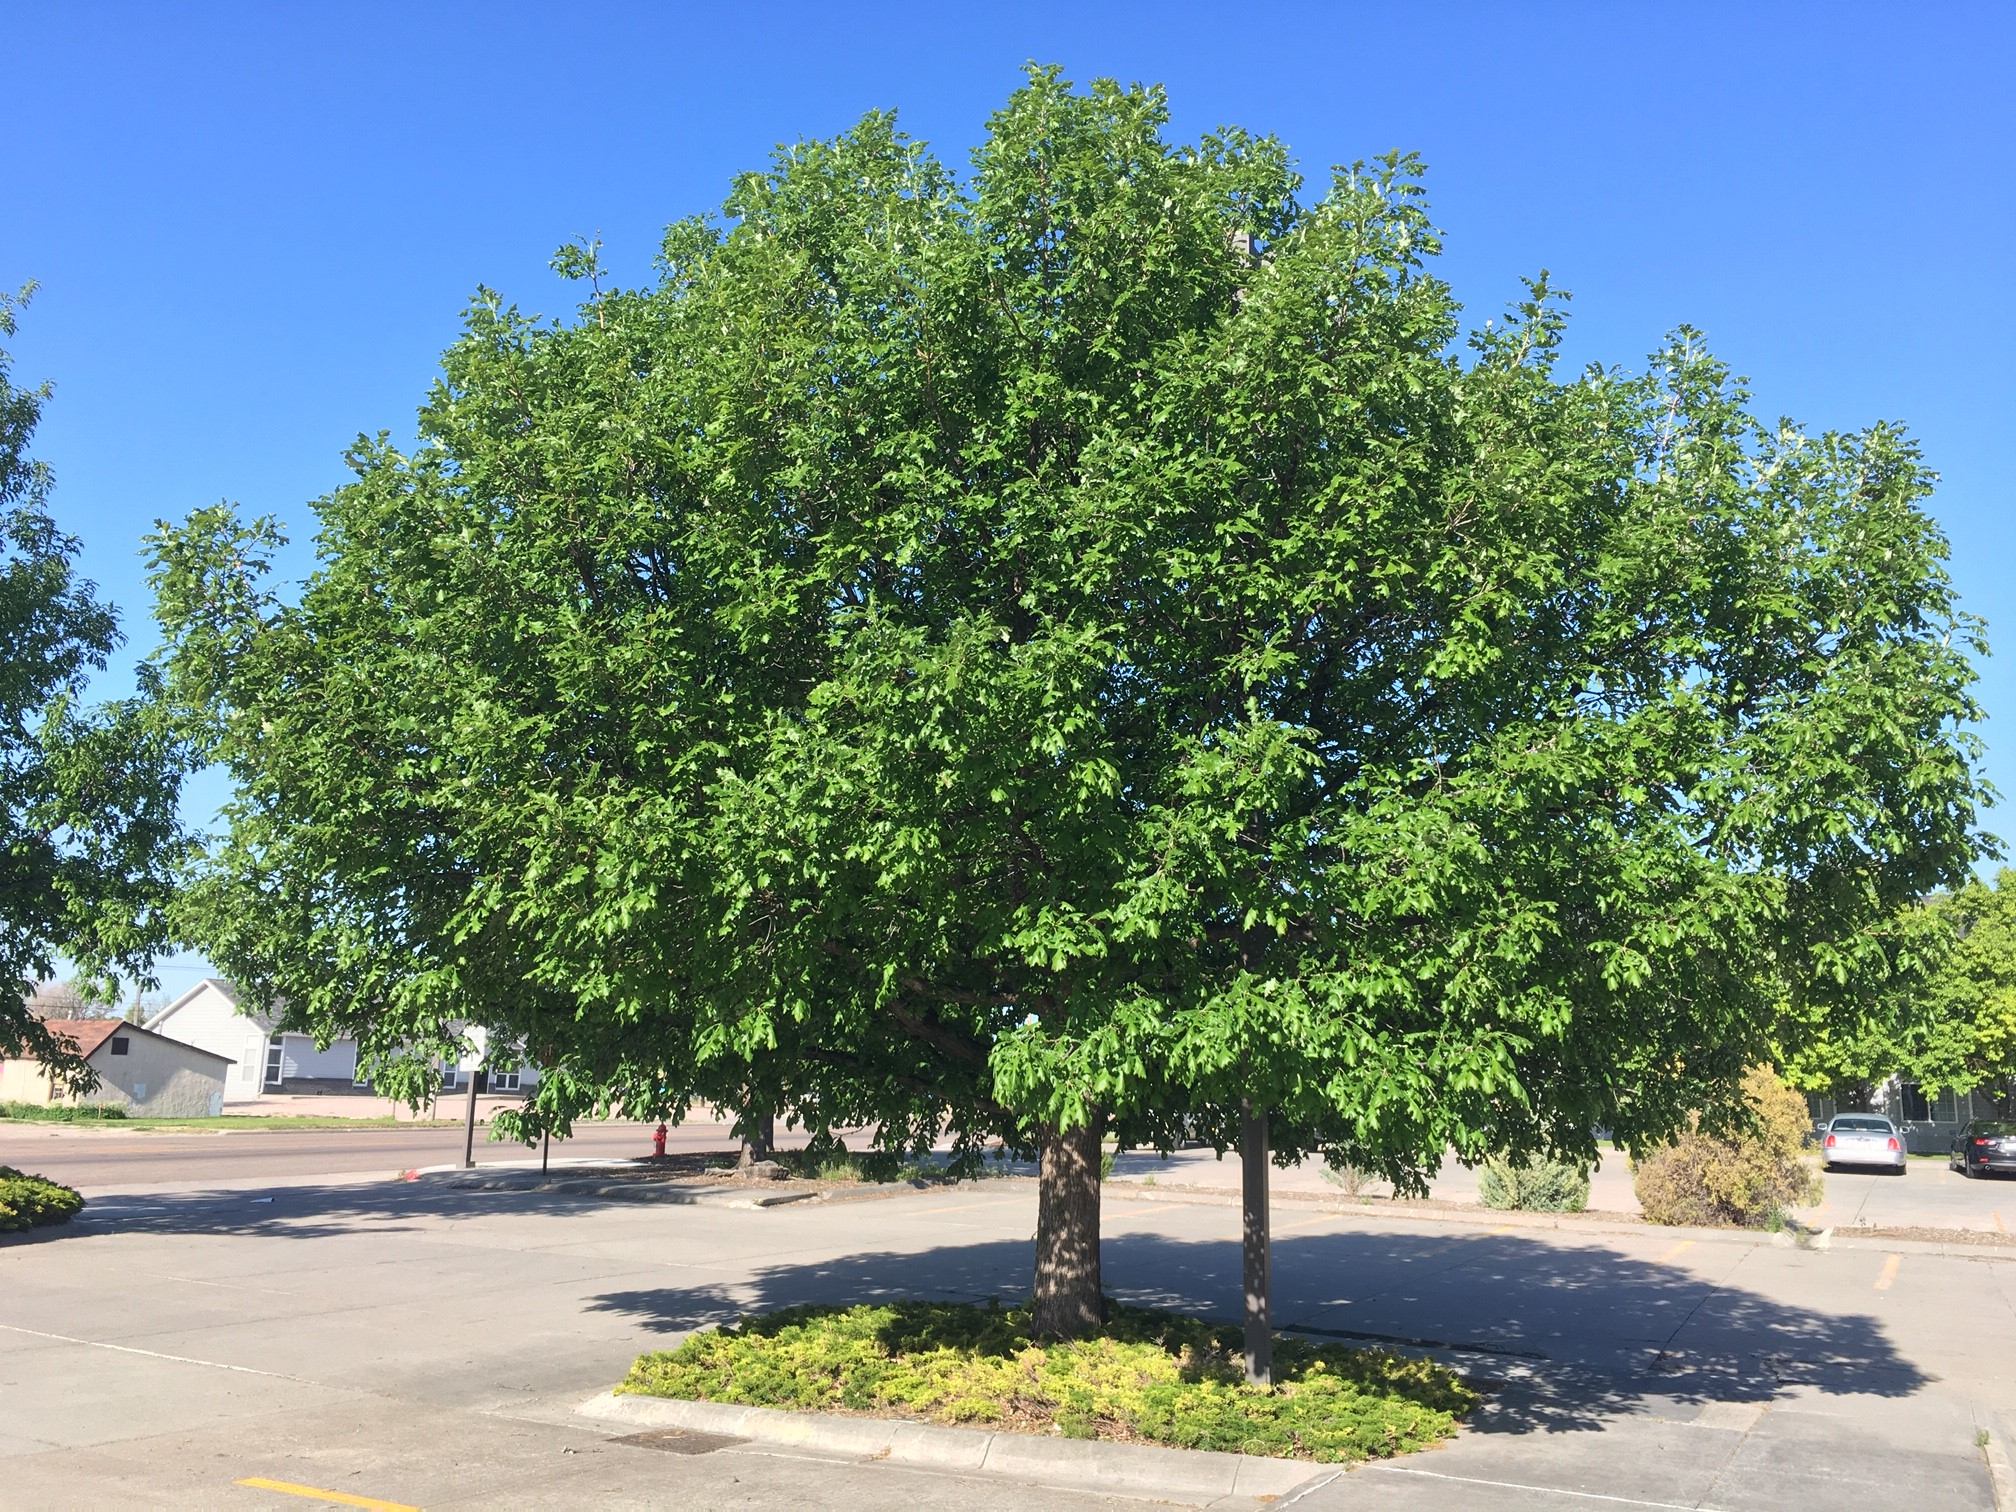 Bur oak in a city right of way.